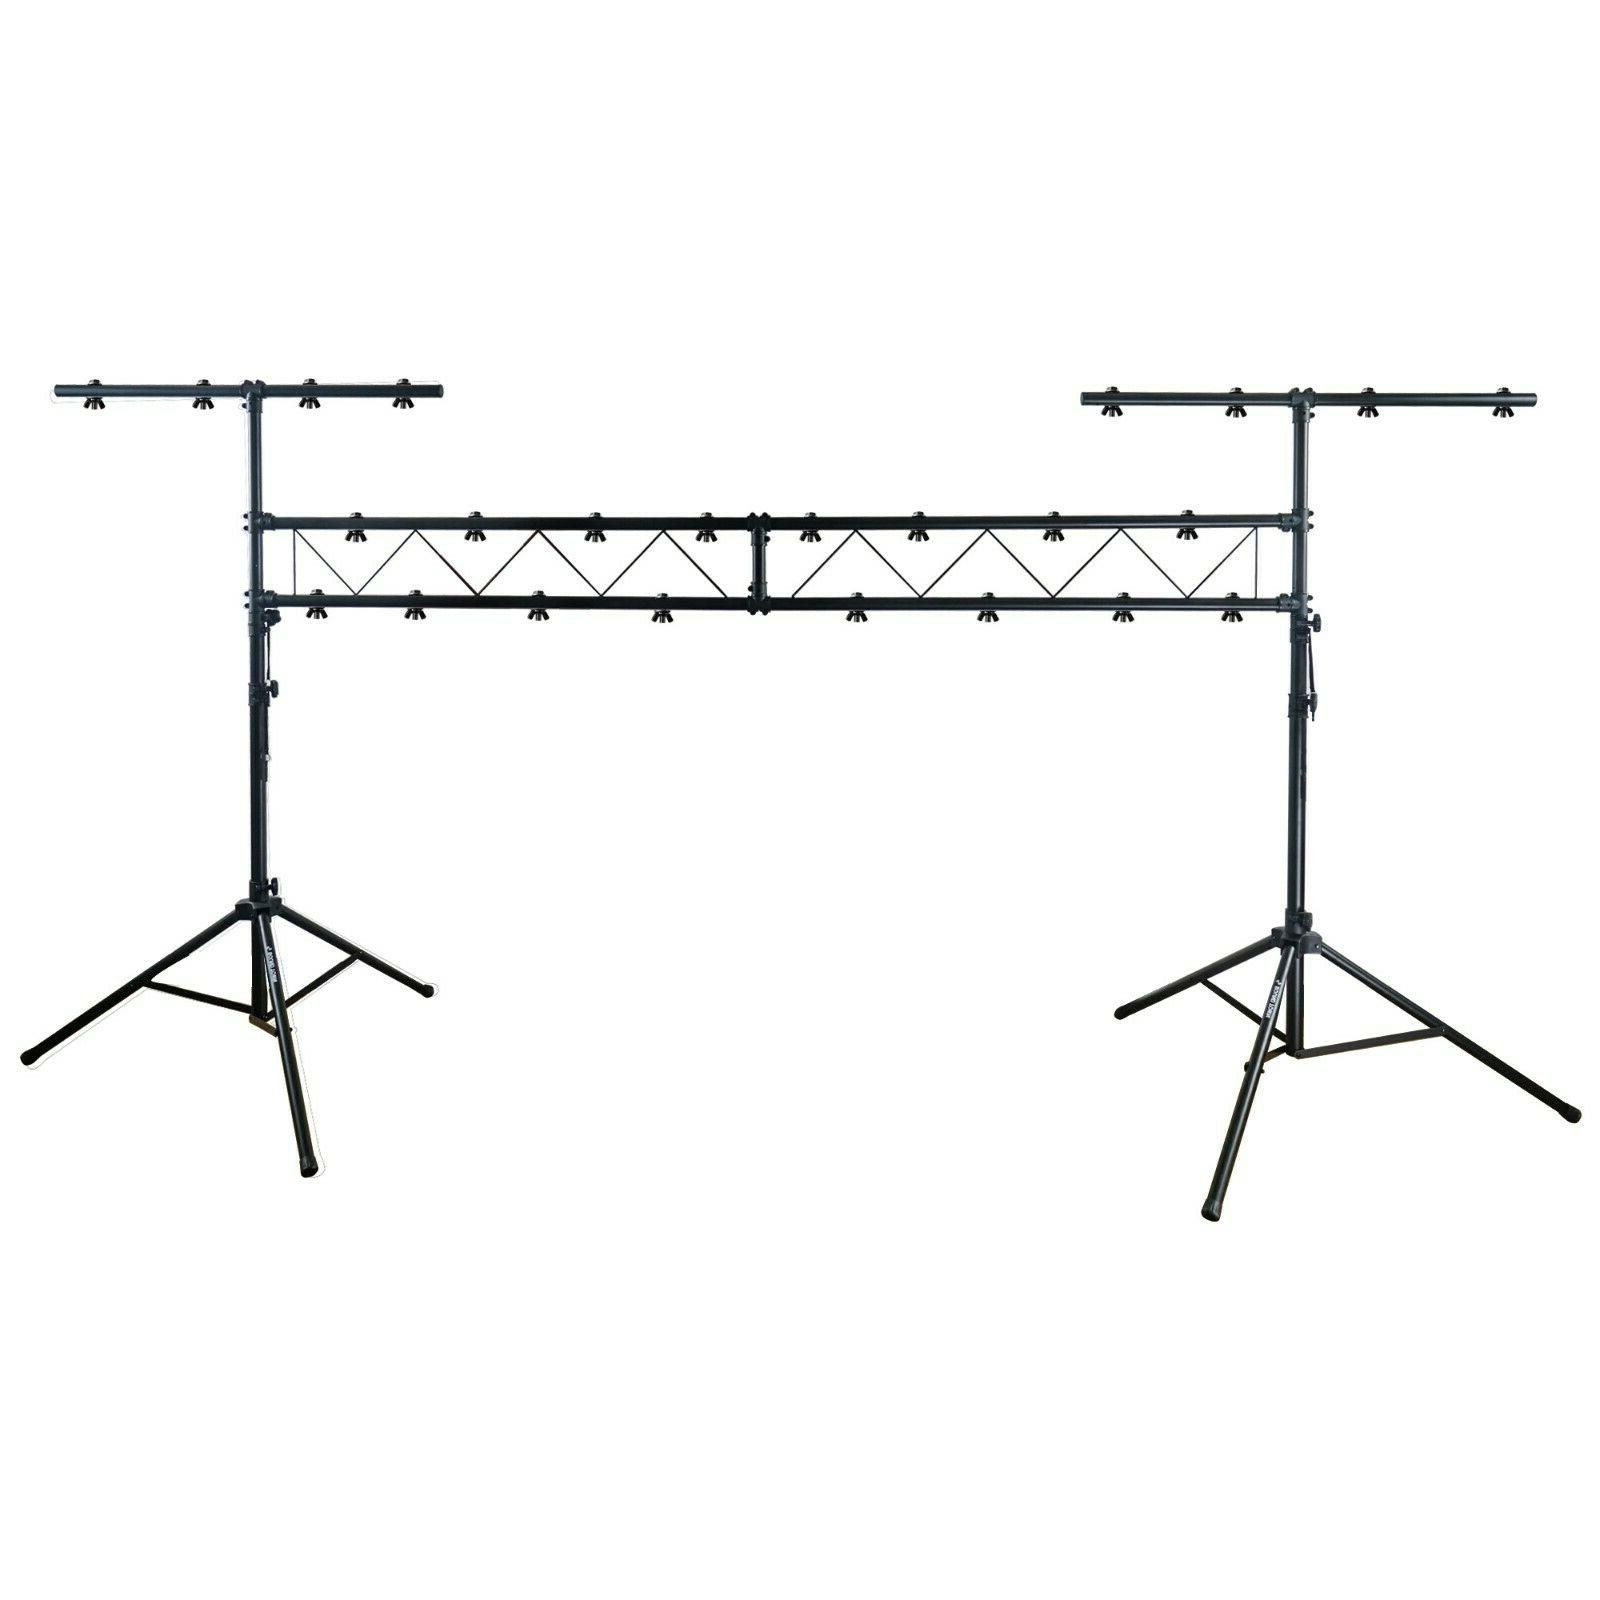 Sound Town Lighting Stand with Truss, Portable Lighting